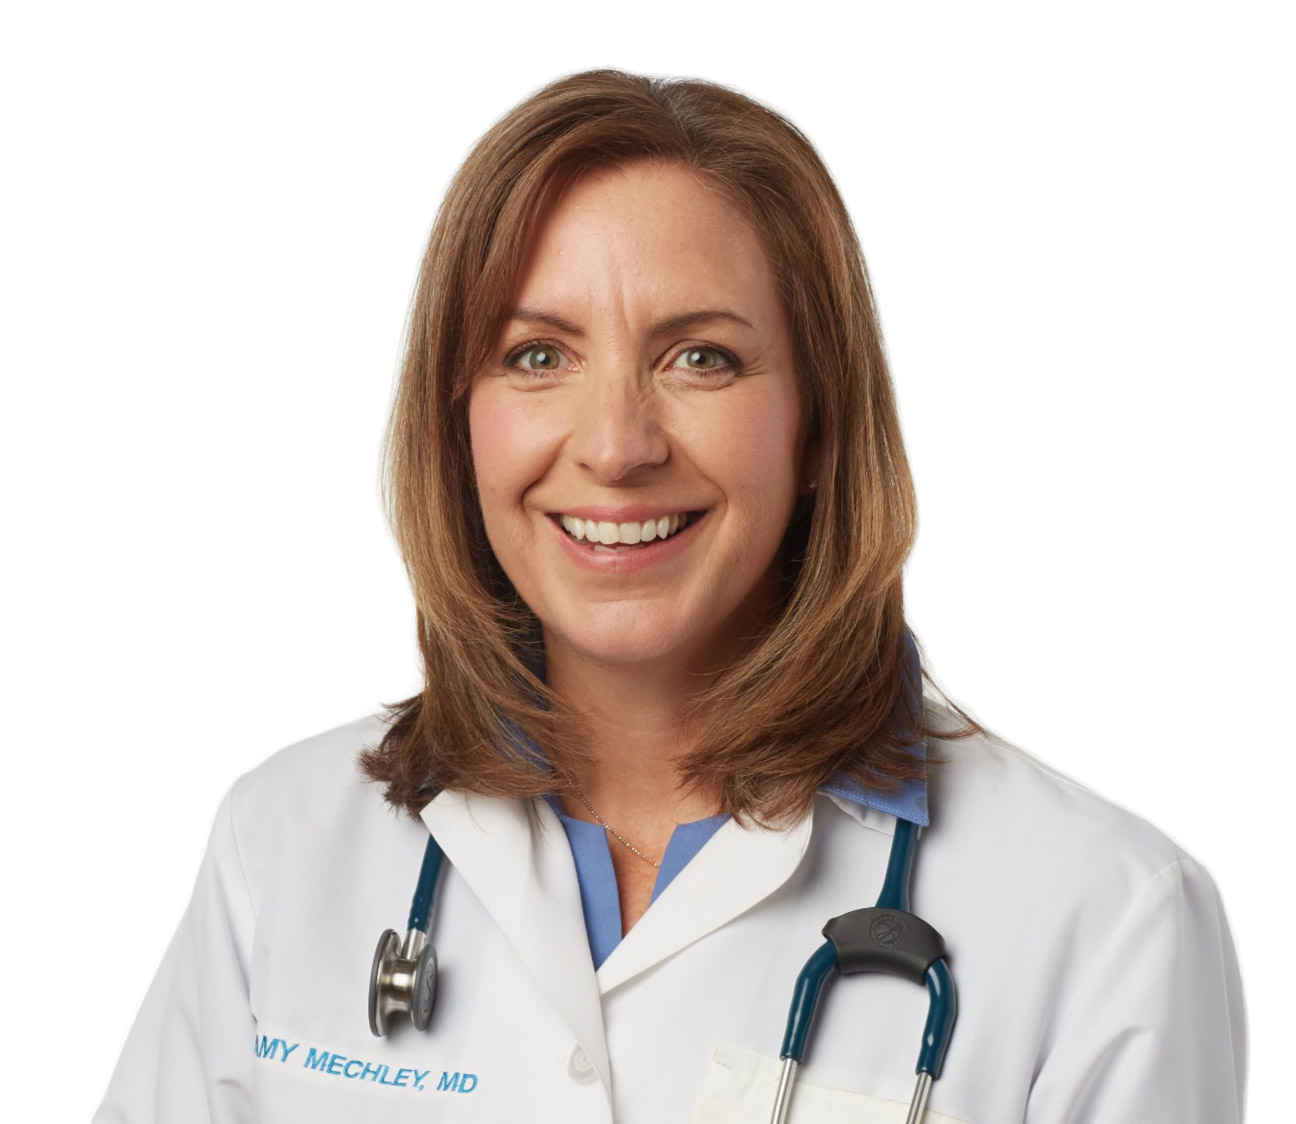 Amy Mechley, MD